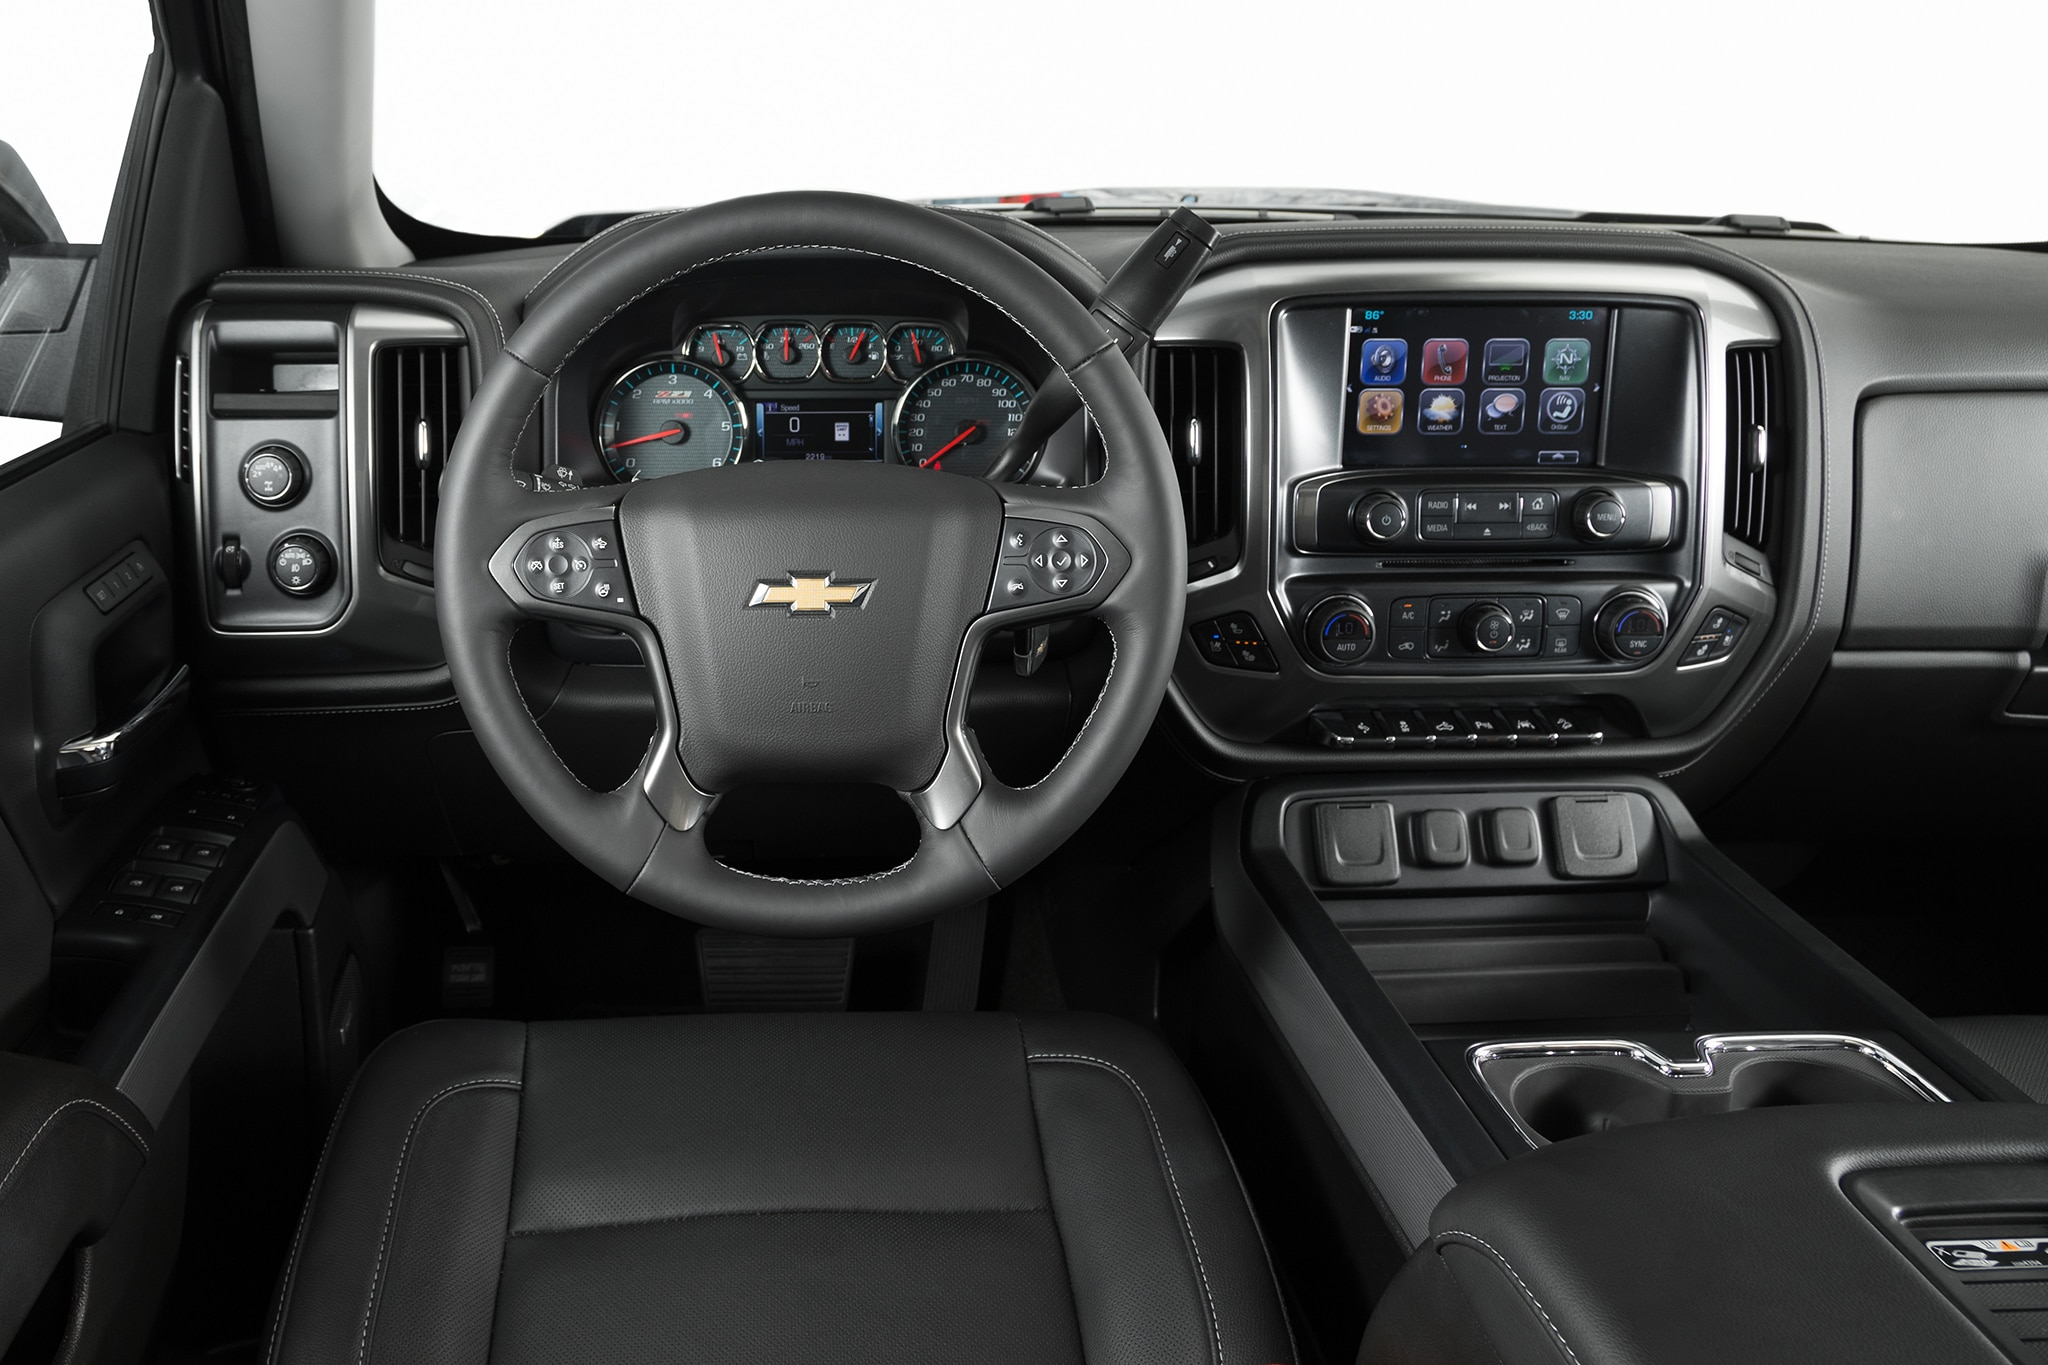 2017 chevrolet silverado 1500 z71 dashboard motor trend en espa ol. Black Bedroom Furniture Sets. Home Design Ideas